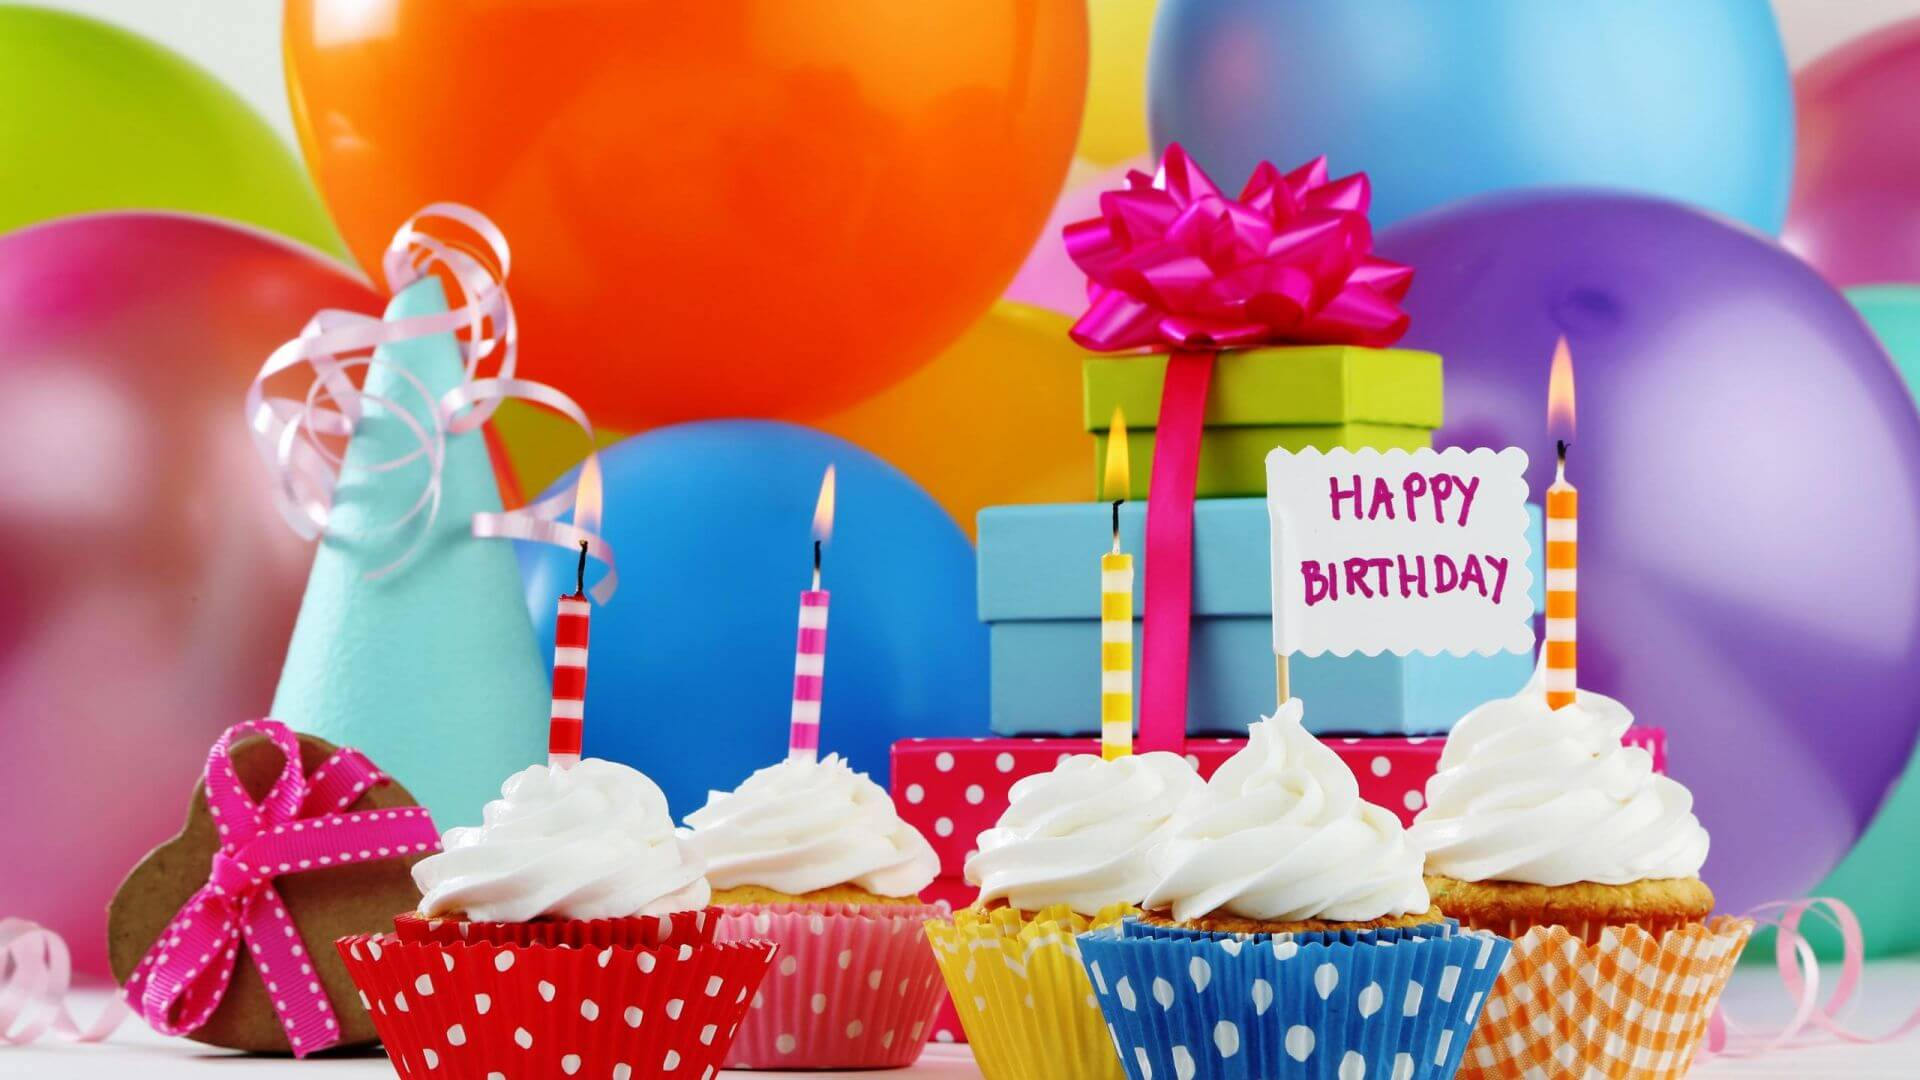 1233500-happy-birthday-cake-animation